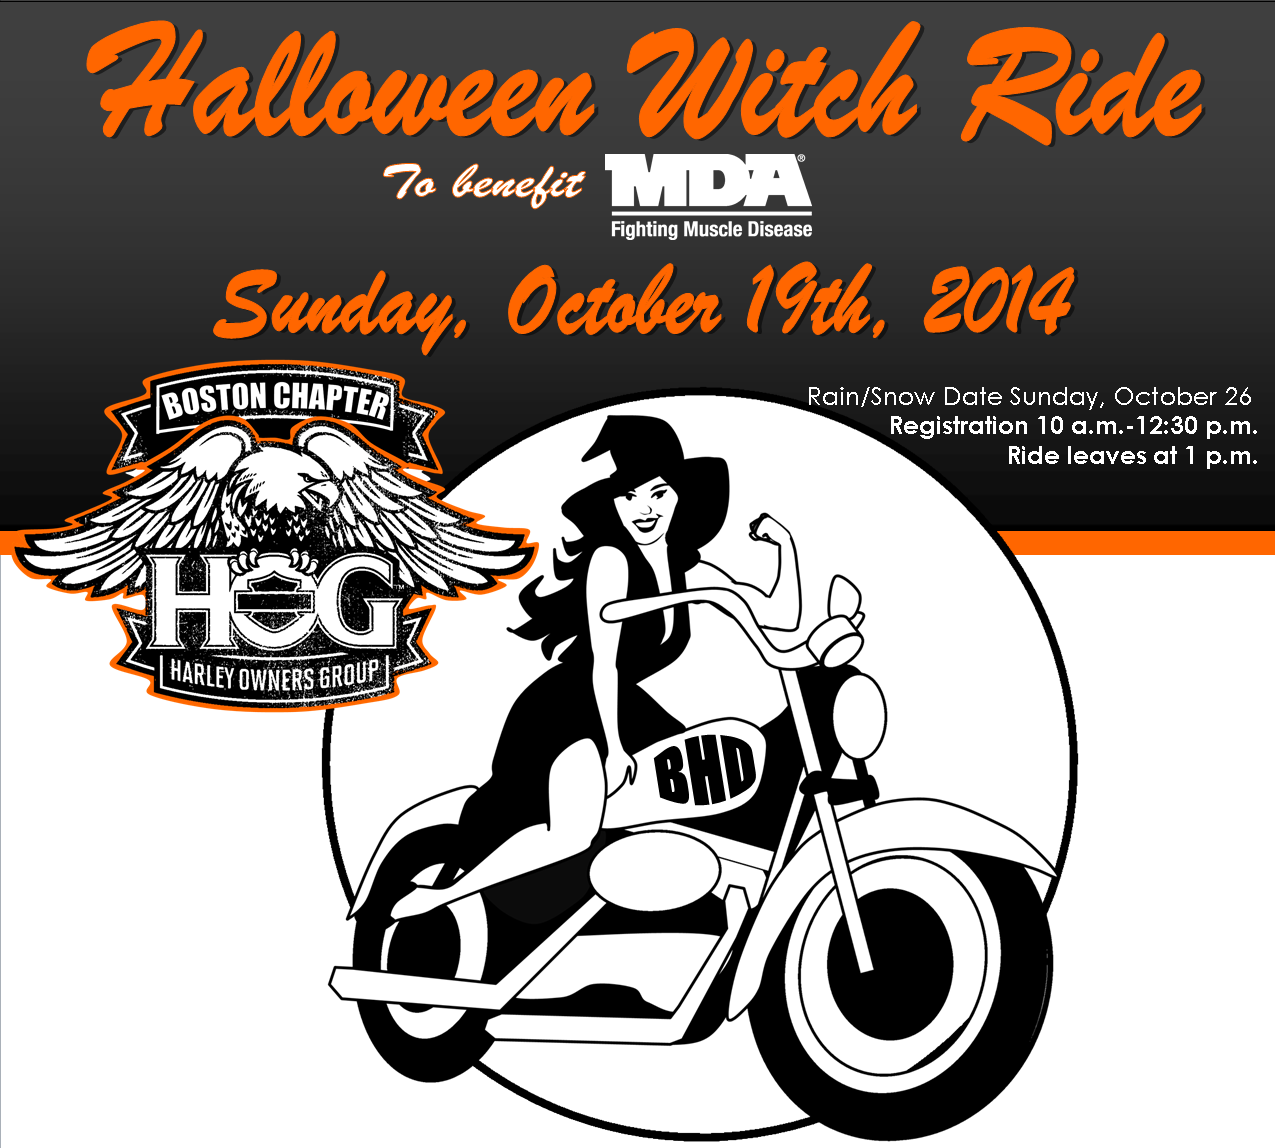 Halloween Witch Ride To Benefit MDA